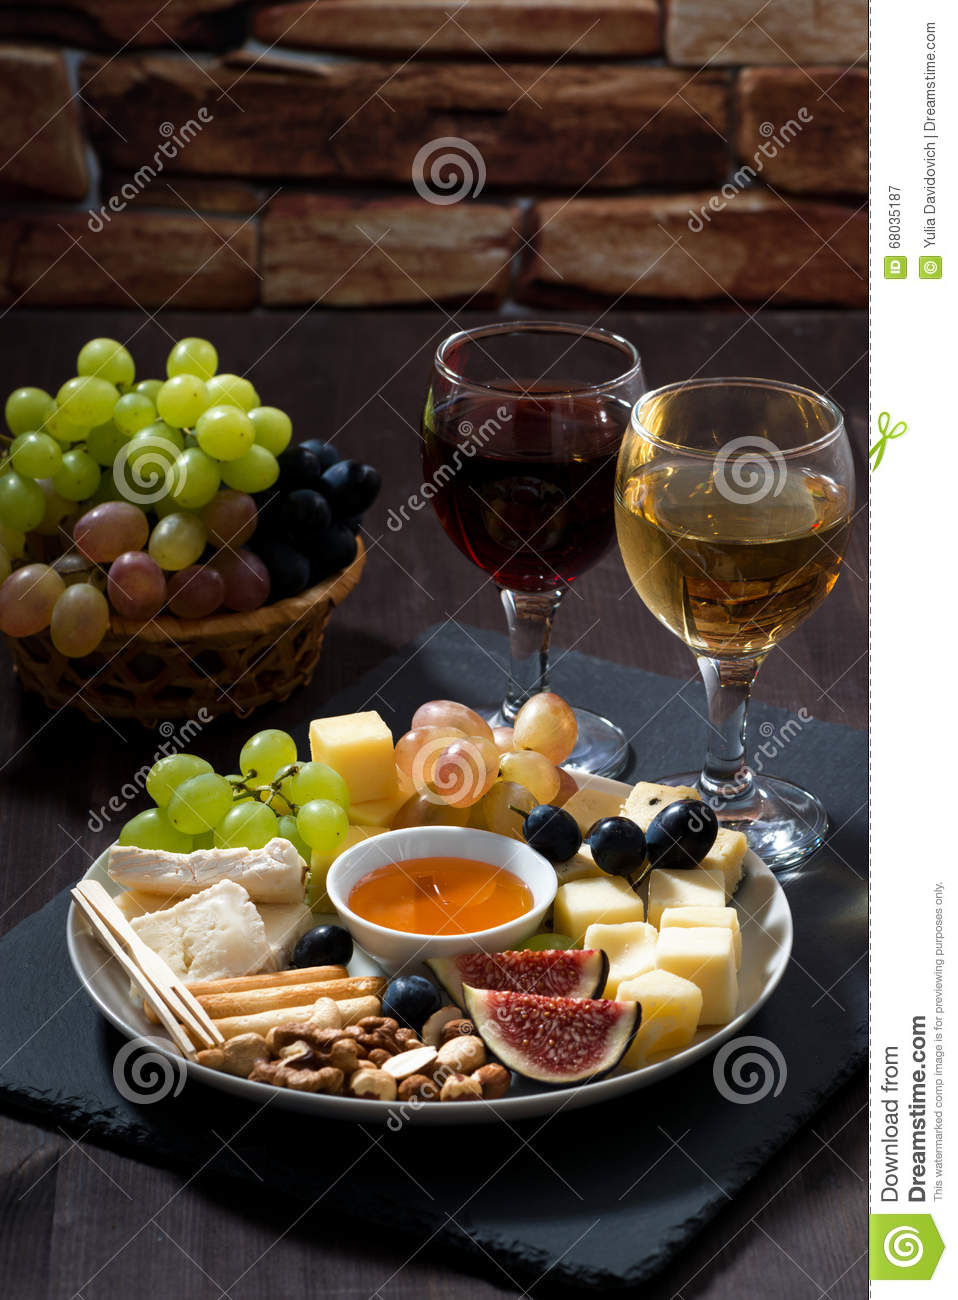 Plate With Deli Snacks And Wine On A Dark Background Vertical Stock Image Image Of Brie Alcohol 68035187